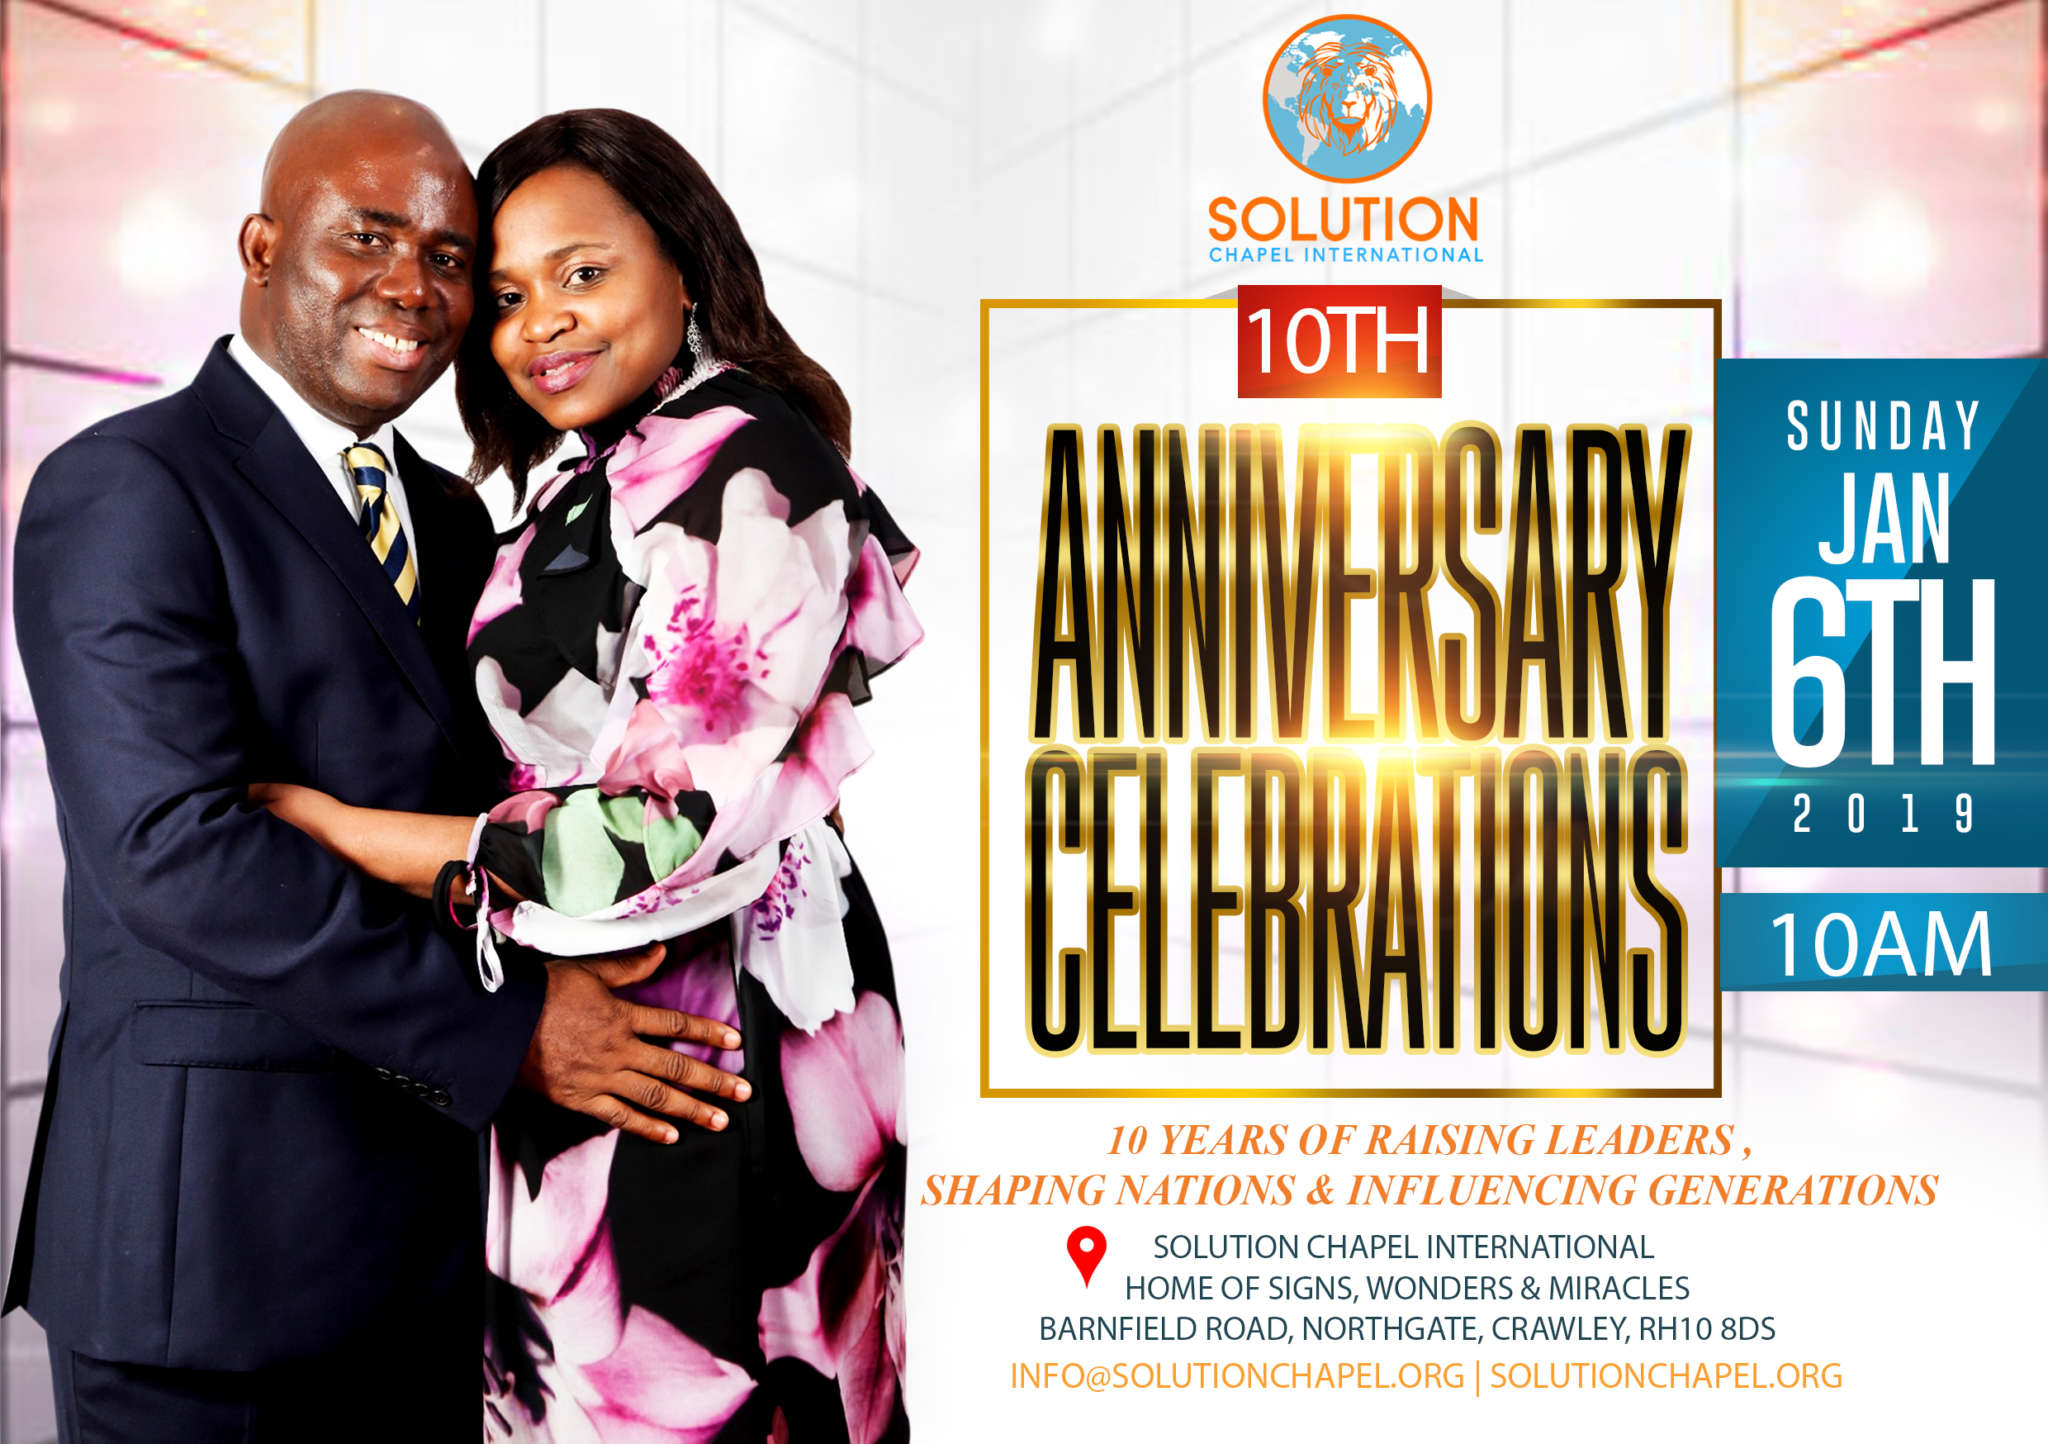 10th Anniversary Solution Chapel International